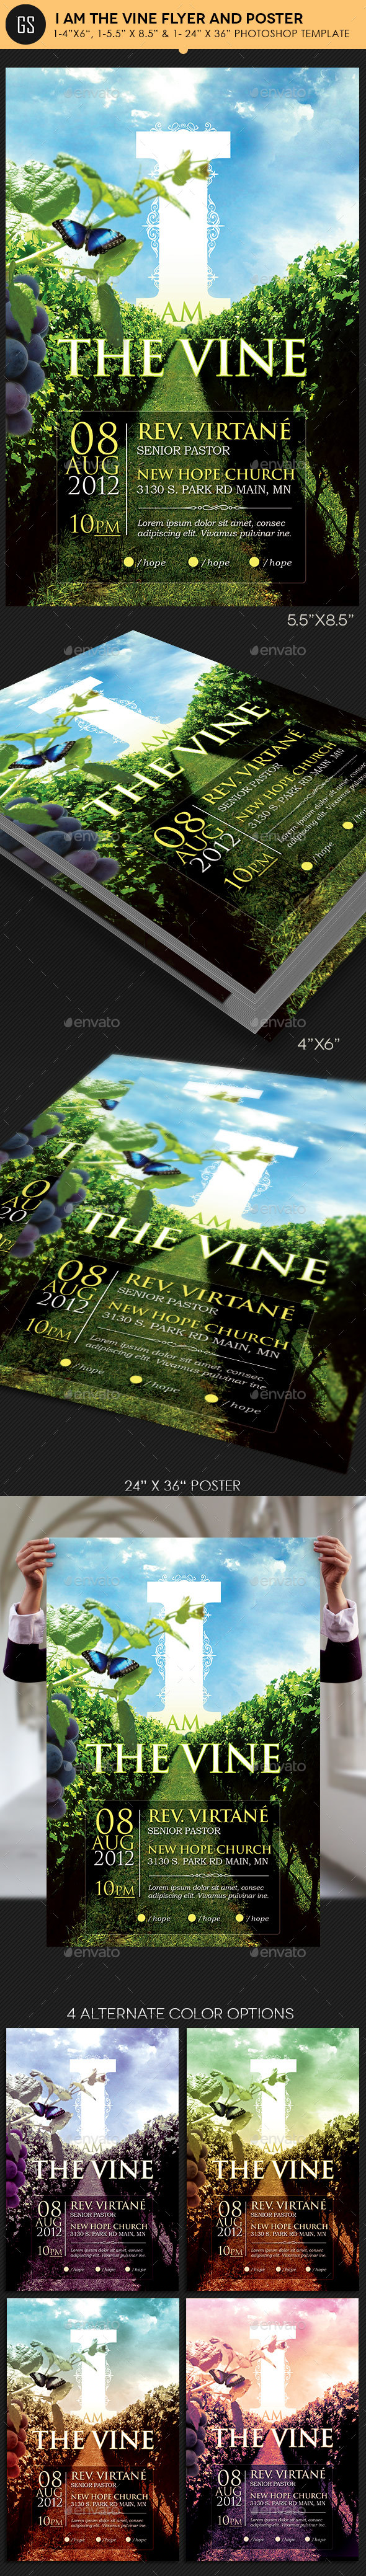 I Am The Vine Church Flyer Poster Template - Church Flyers